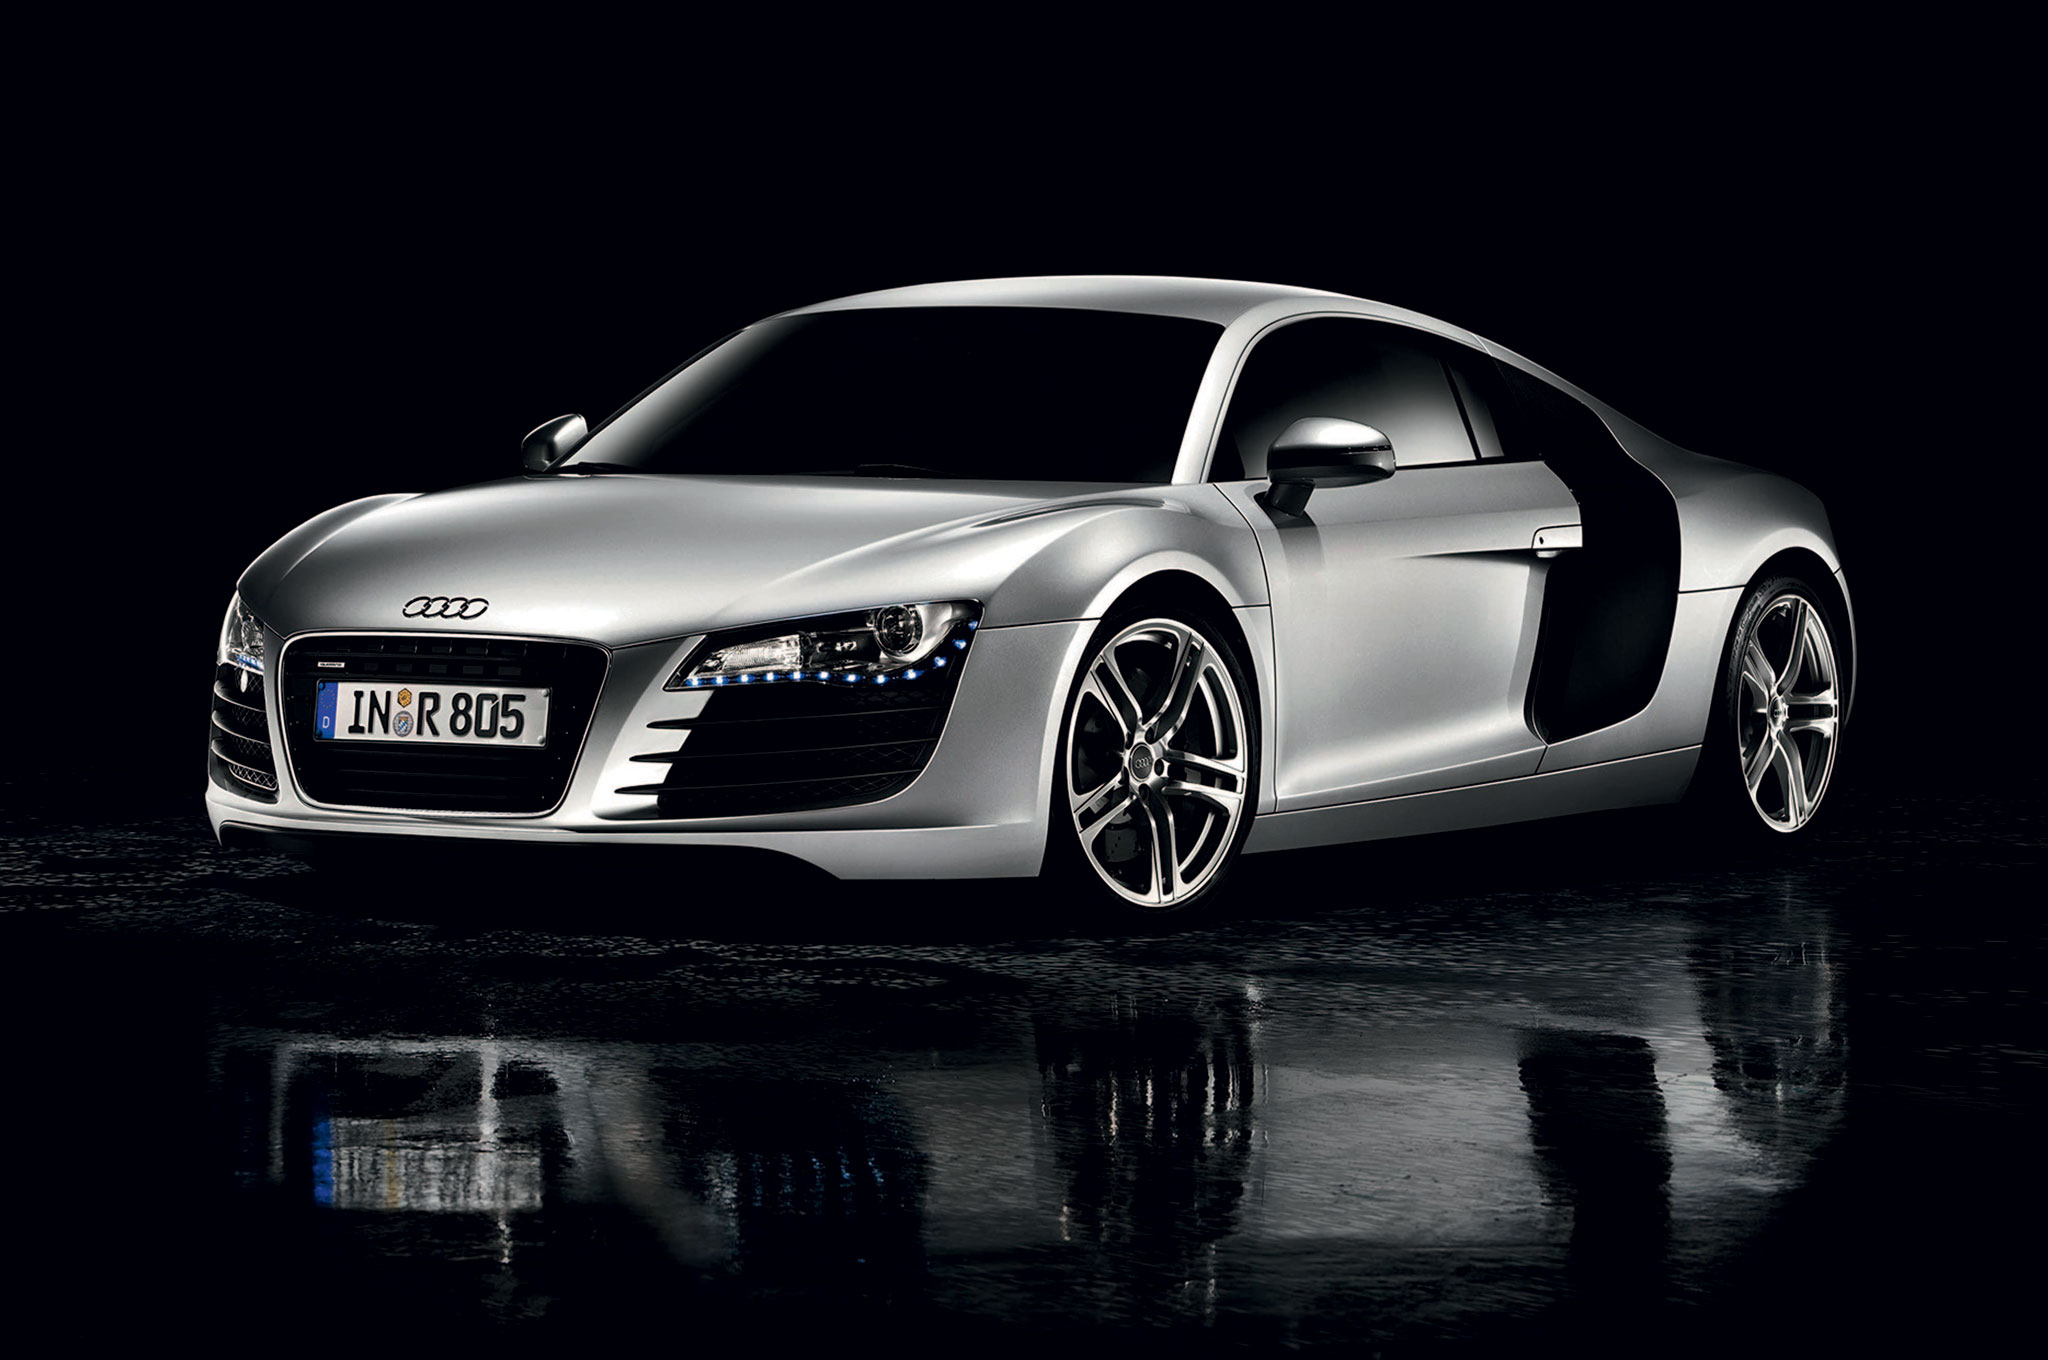 2008 Audi R8 Coupe Front Three Quarter Reflection1